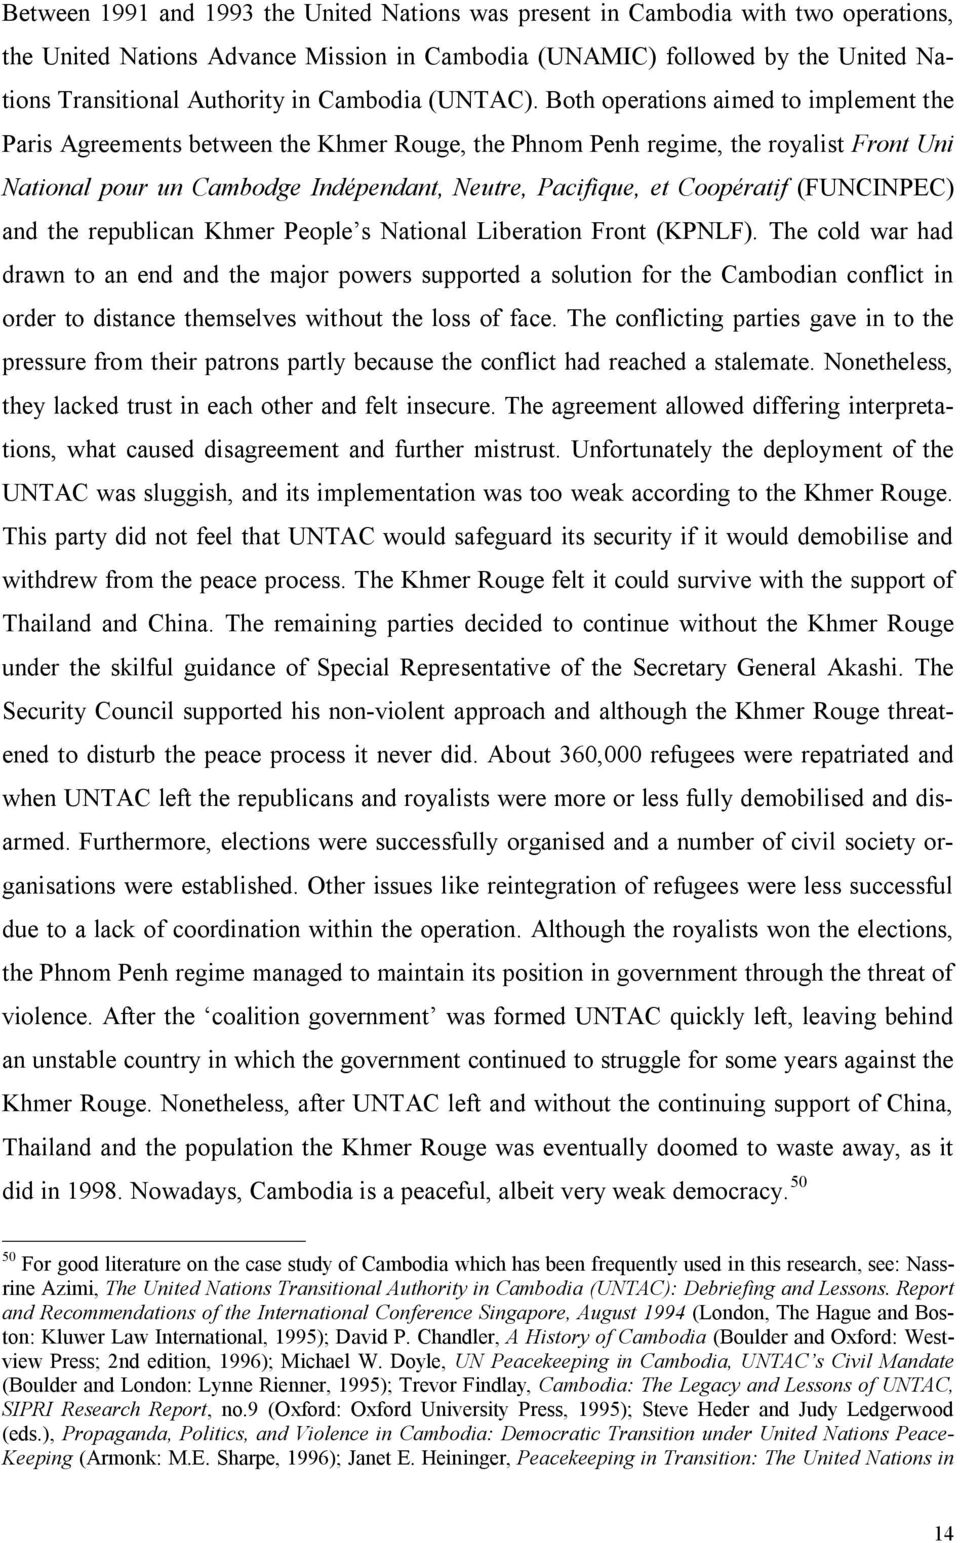 Both operations aimed to implement the Paris Agreements between the Khmer Rouge, the Phnom Penh regime, the royalist Front Uni National pour un Cambodge Indépendant, Neutre, Pacifique, et Coopératif